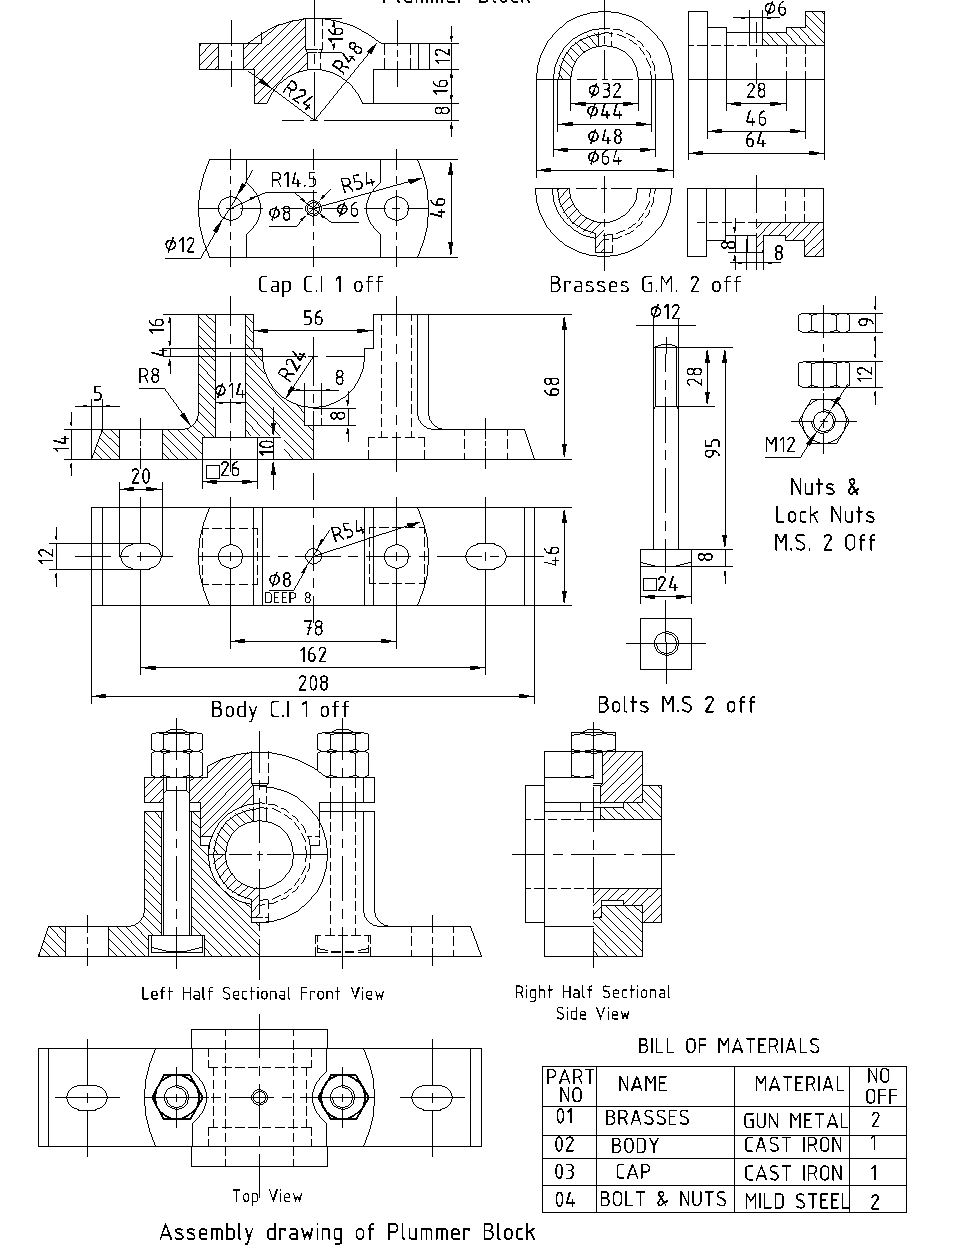 Machine Drawing: August 2019